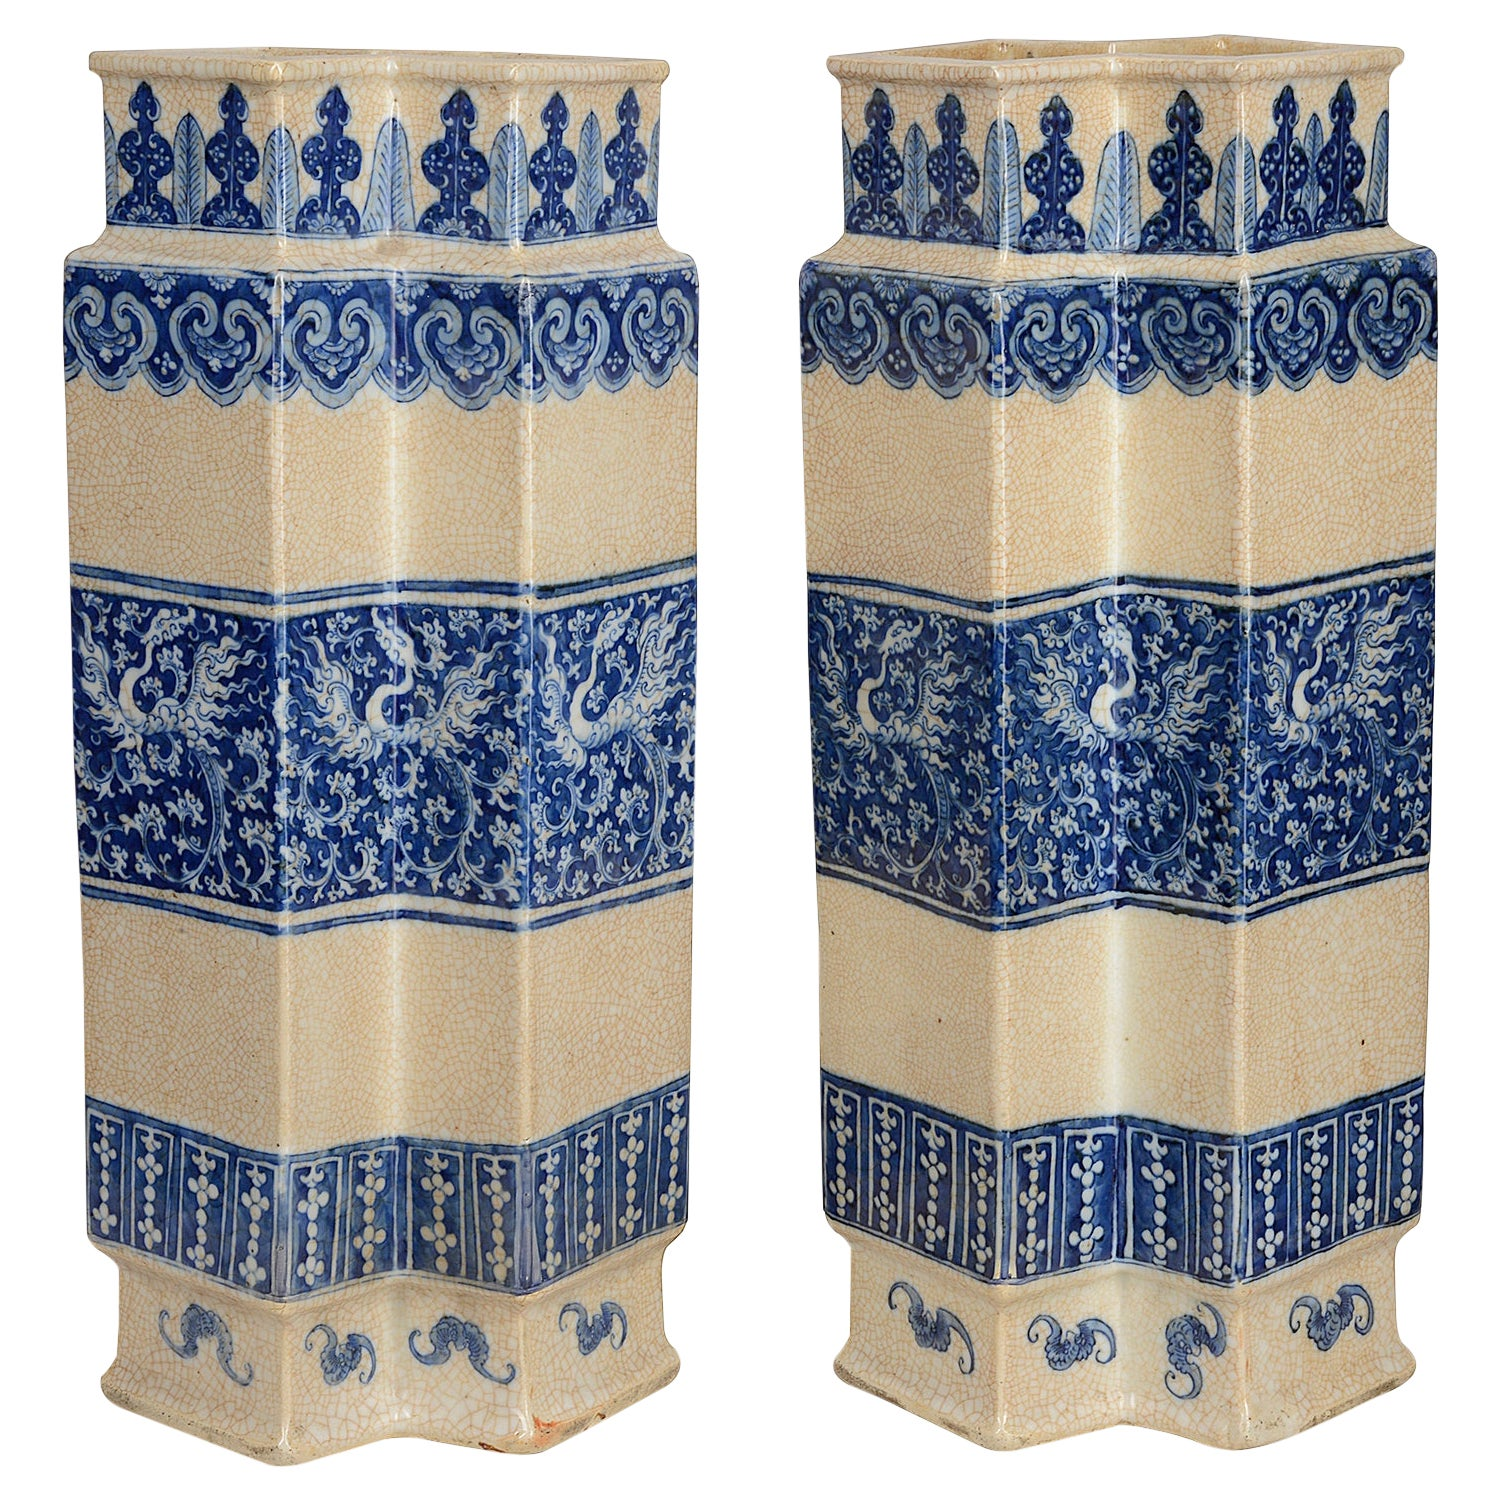 Pair of 19th Century Chinese Crackle Ware Blue and White Vases / Lamps